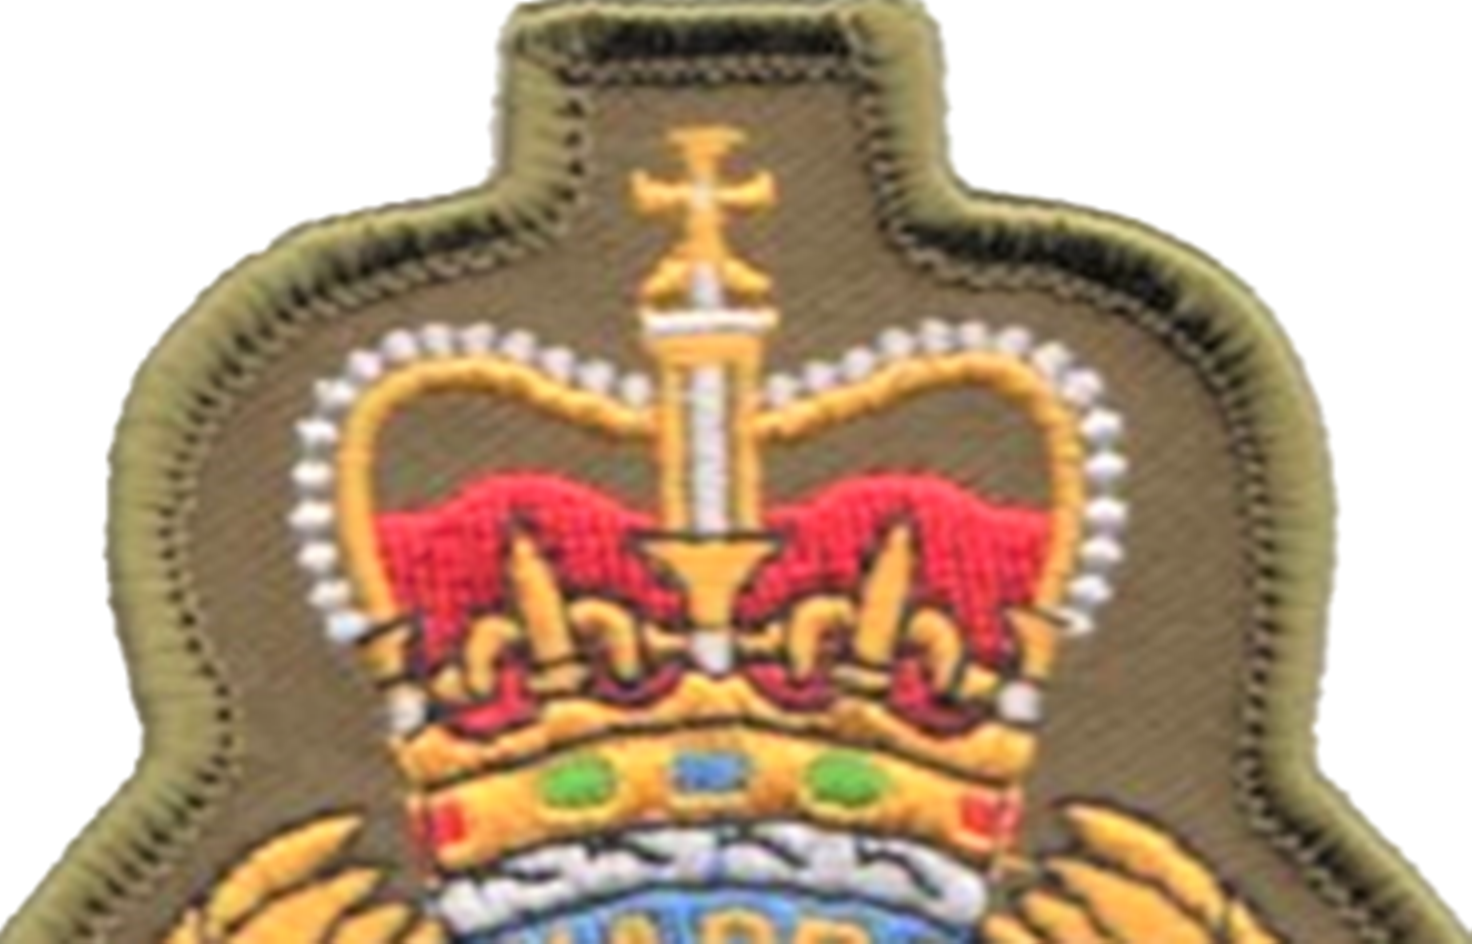 666 squadron british army air corps aac crest olive mod 666 squadron british army air corps aac crest olive mod embroidered patch biocorpaavc Gallery